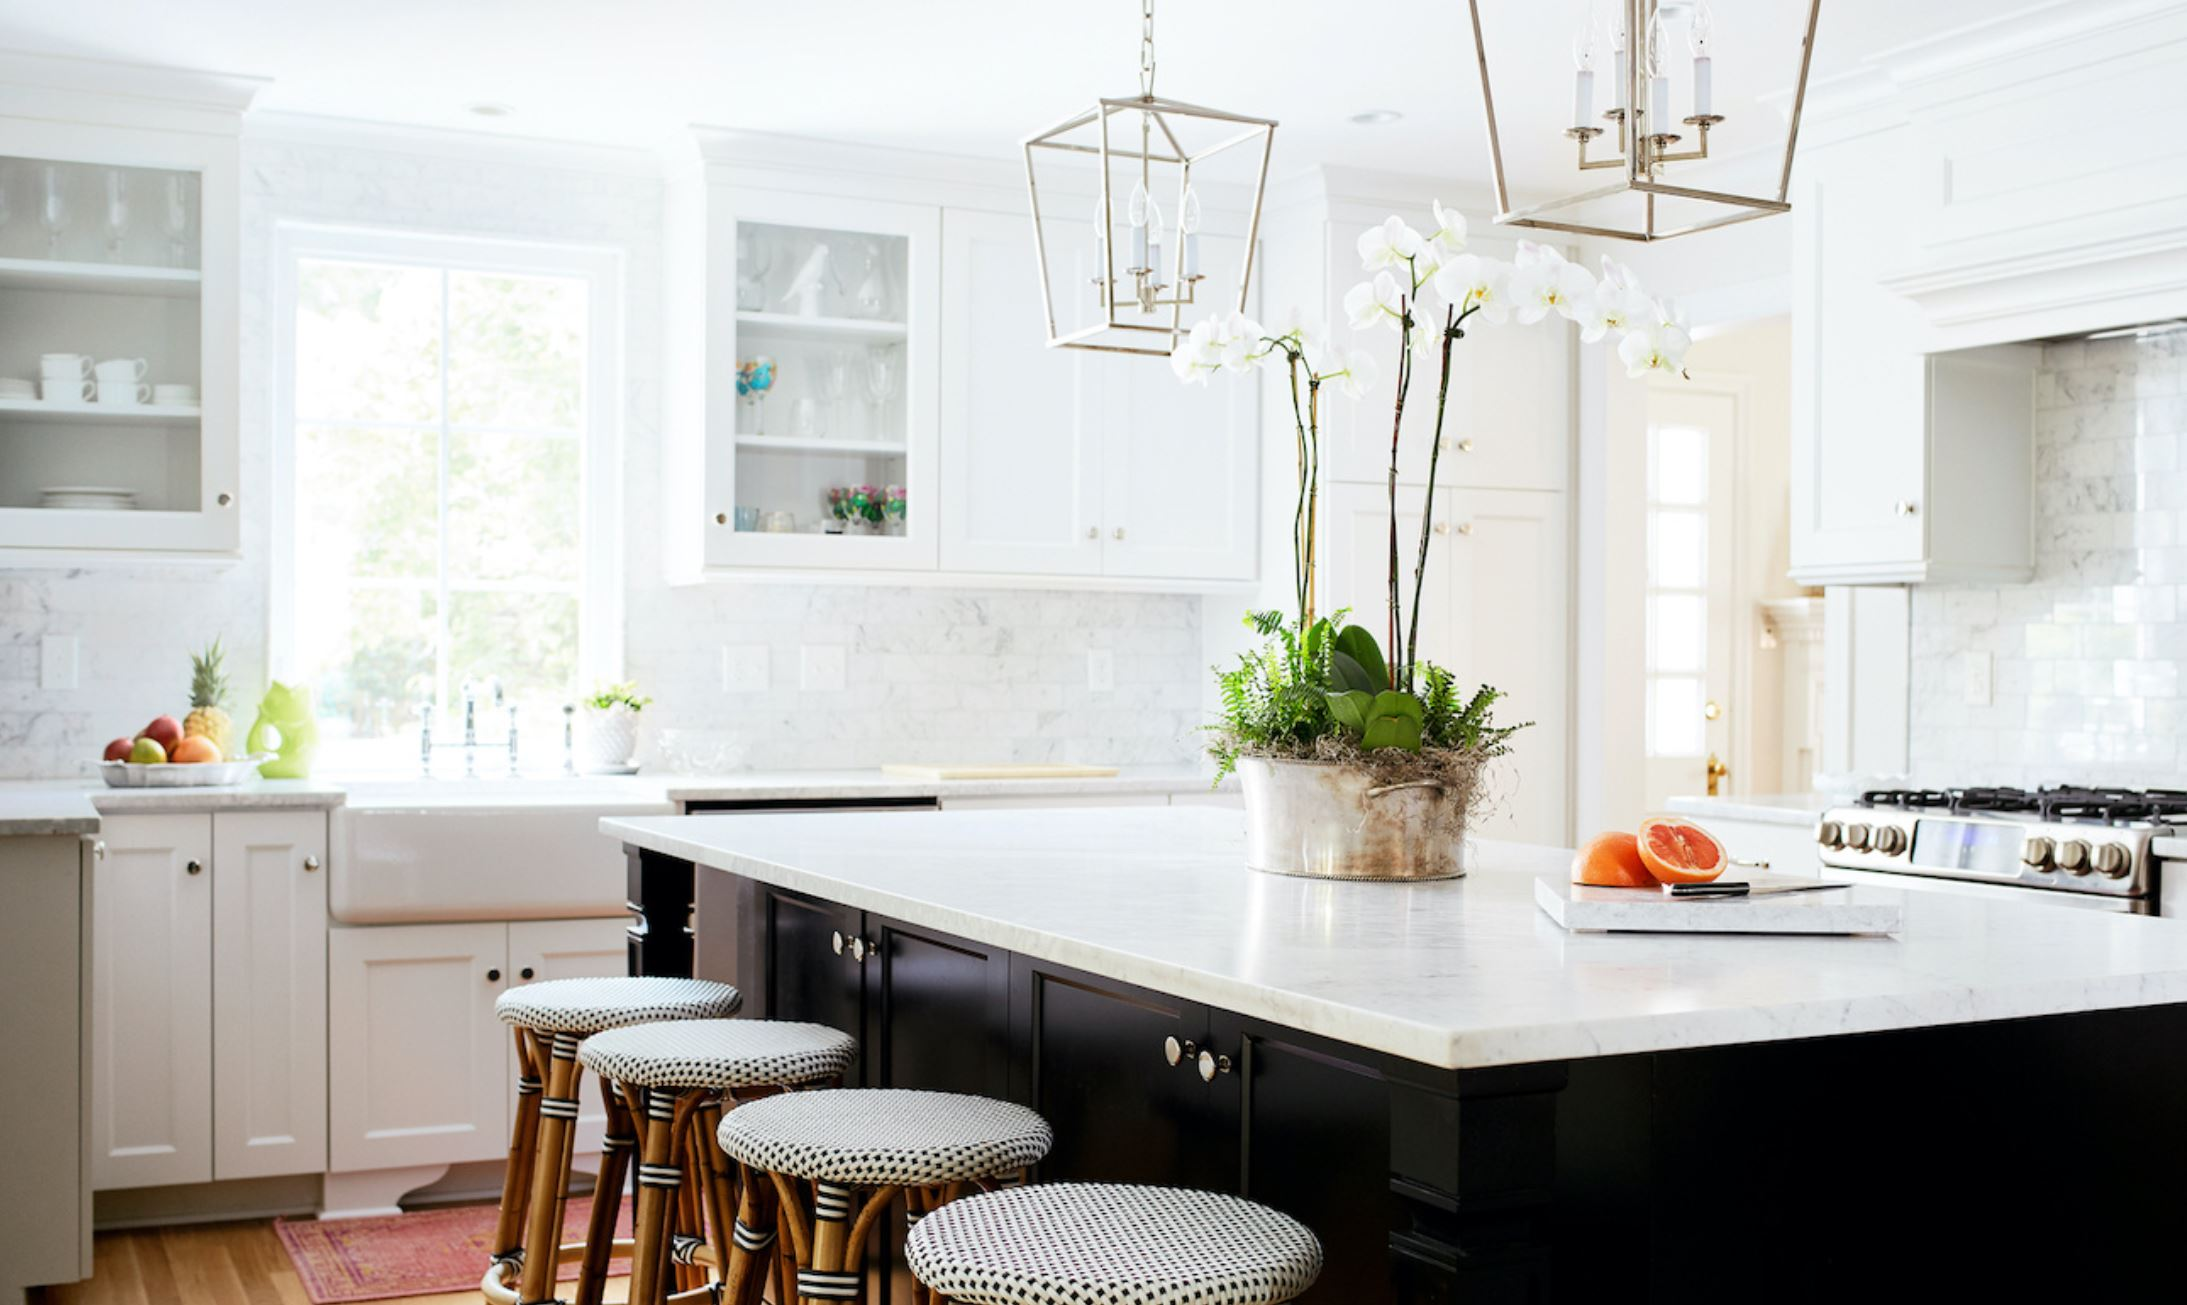 Realtor Magazine 2021 03 15 Ten Ways the Kitchen is evolving for greater flexibility since the begining of the plandemic after going through the COVID-19 Coronavirus pandemic Hoey Team exp Realty